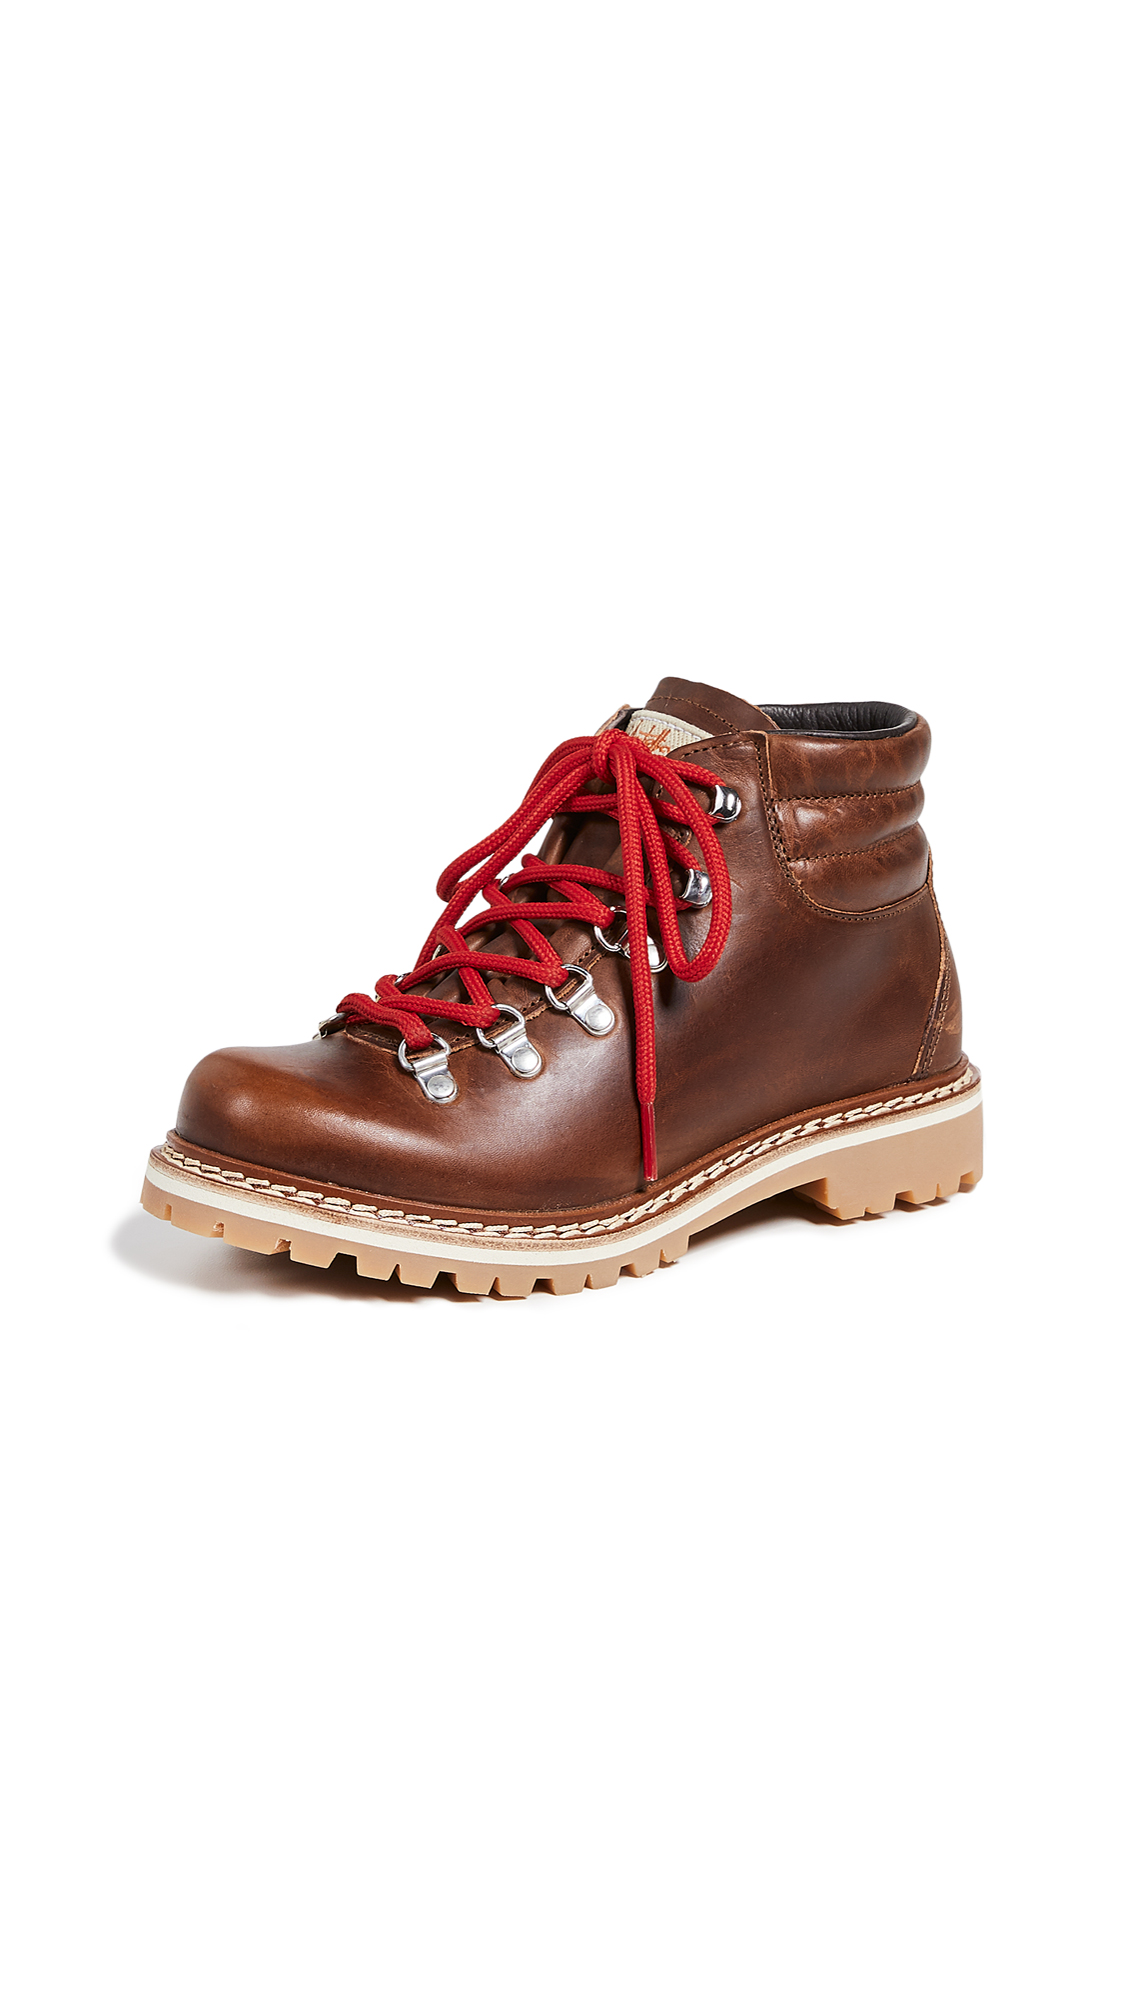 MONTELLIANA Margherita Hiker Boots in Brown Benson